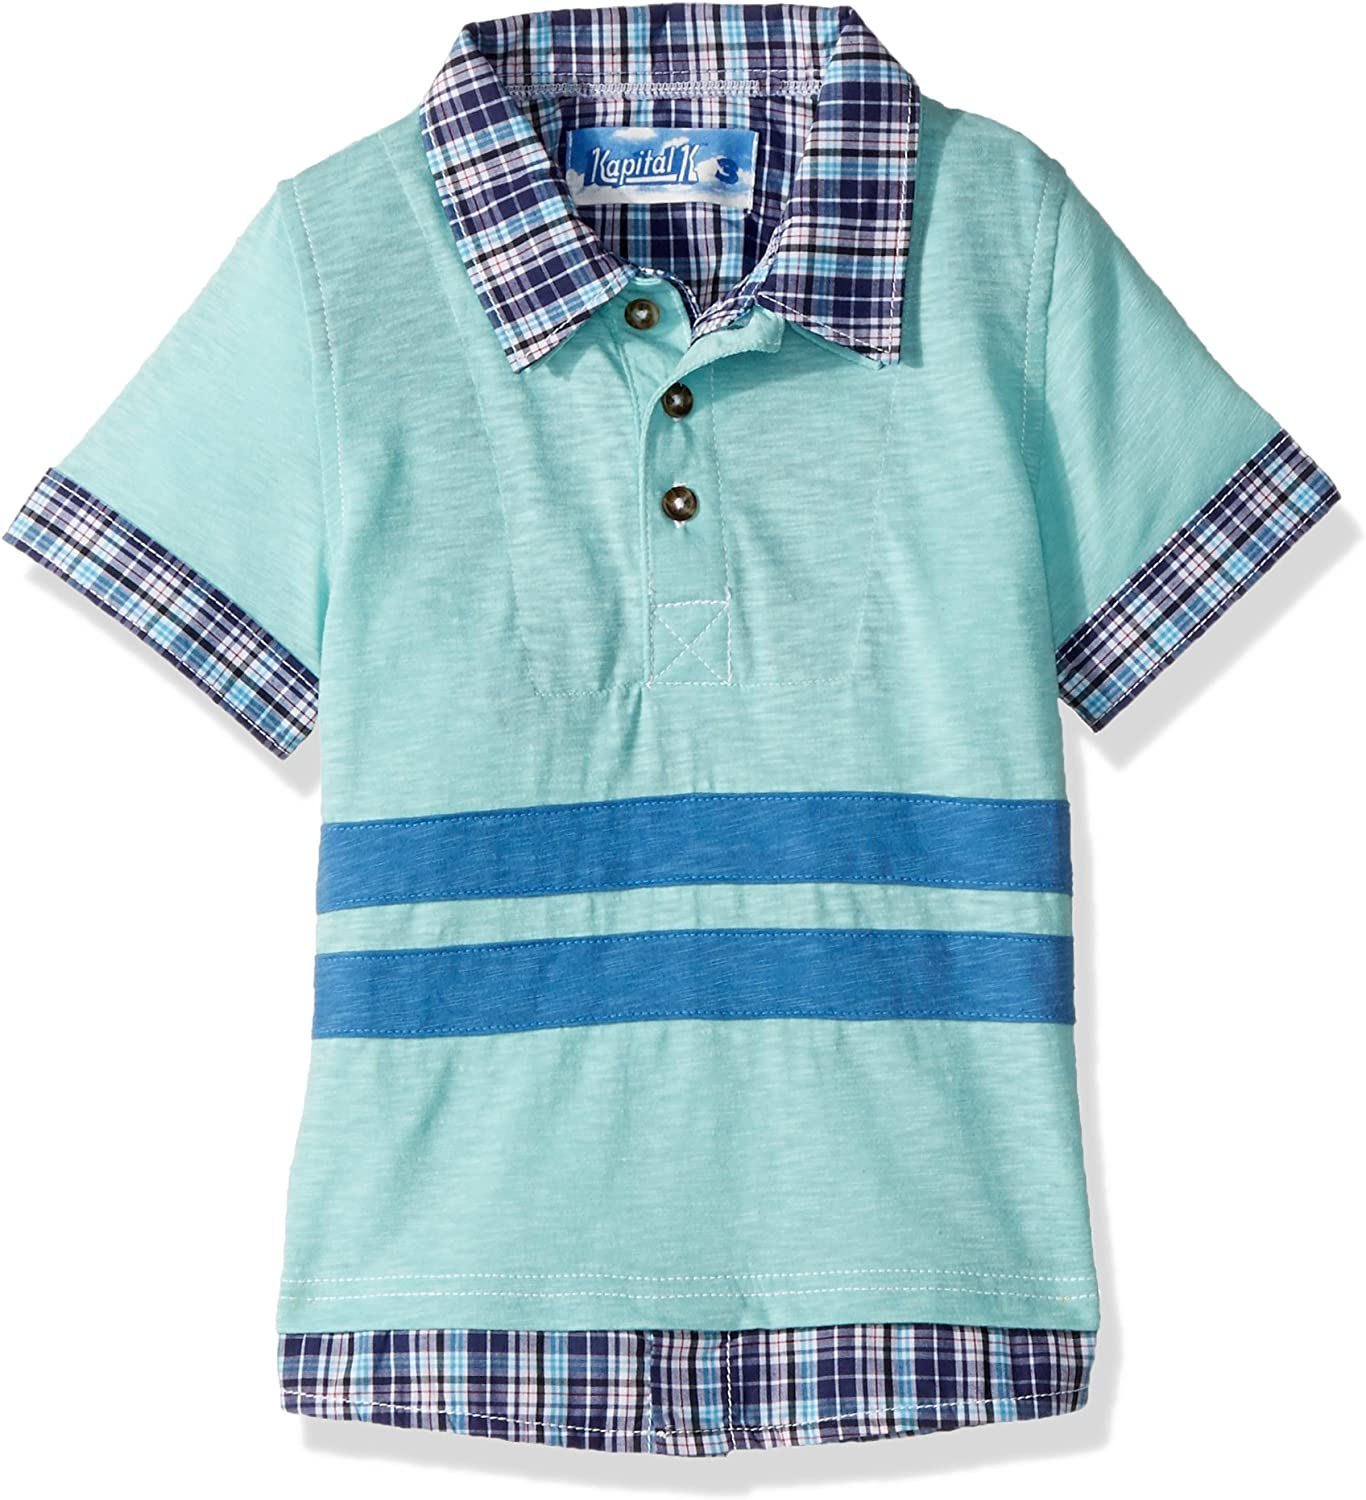 Kapital K Boys' 2-in-1 Layered Polo with 3D Stripes